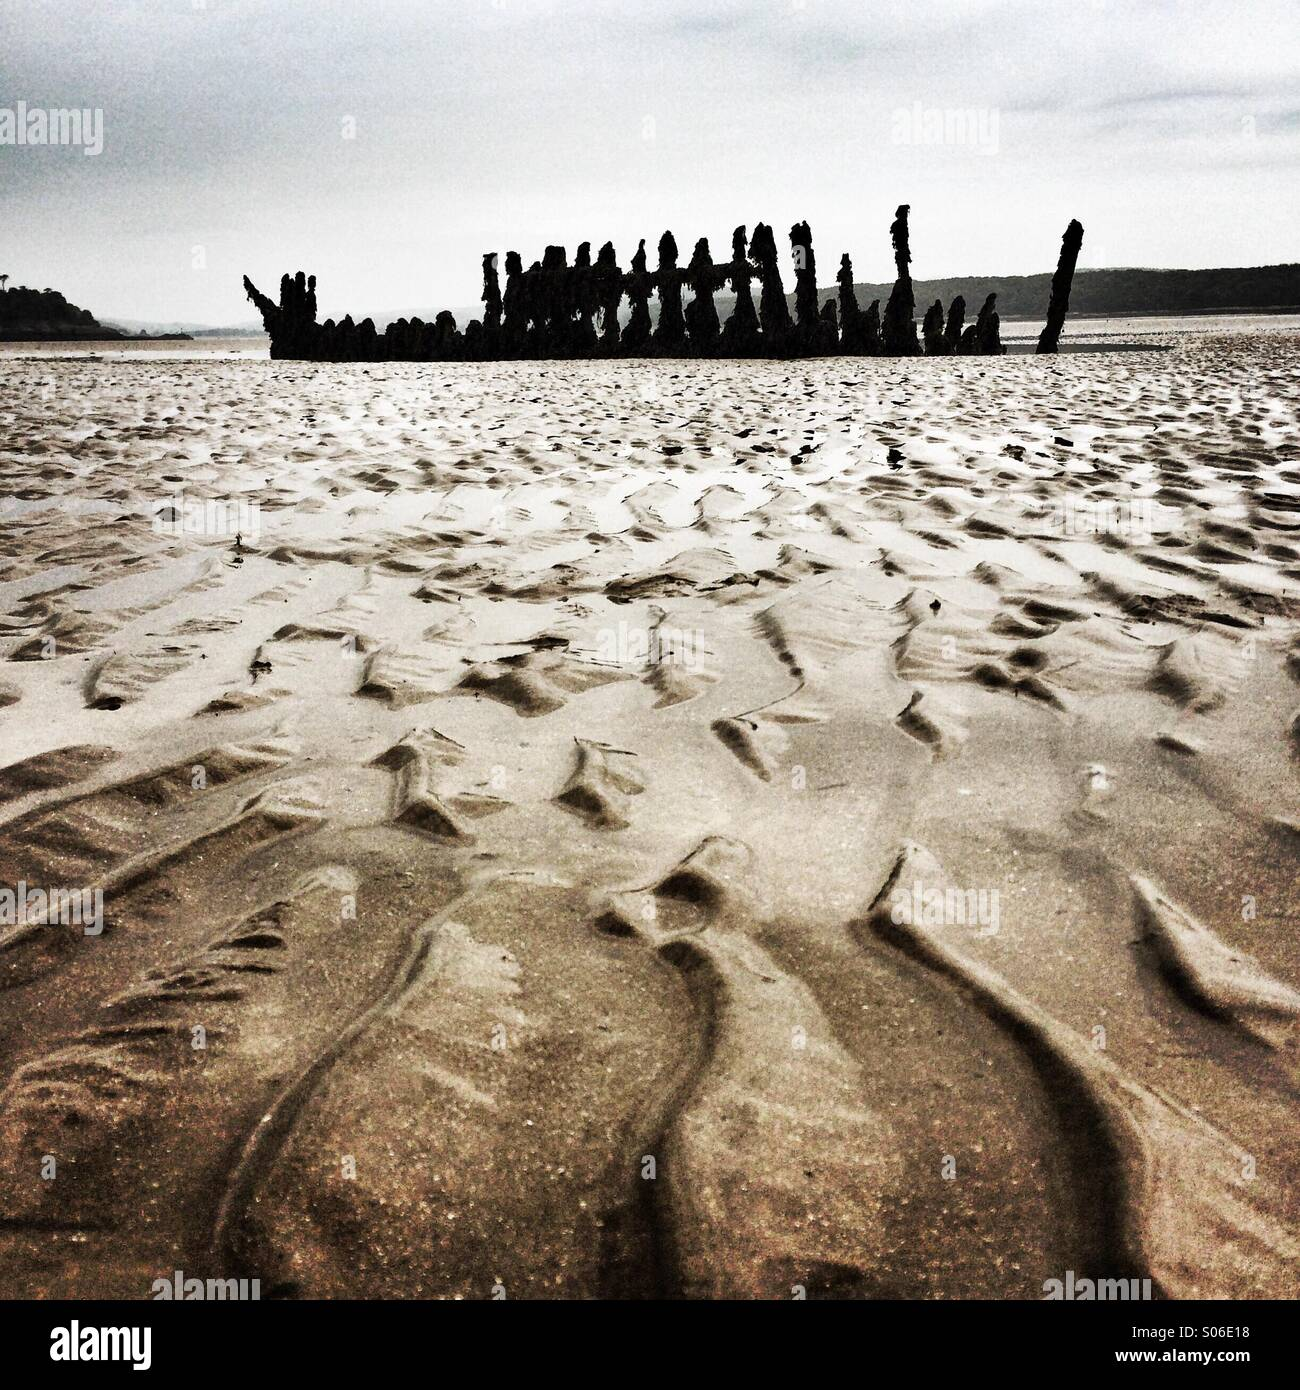 Shipwreck in Solway Firth, Scotland - Stock Image